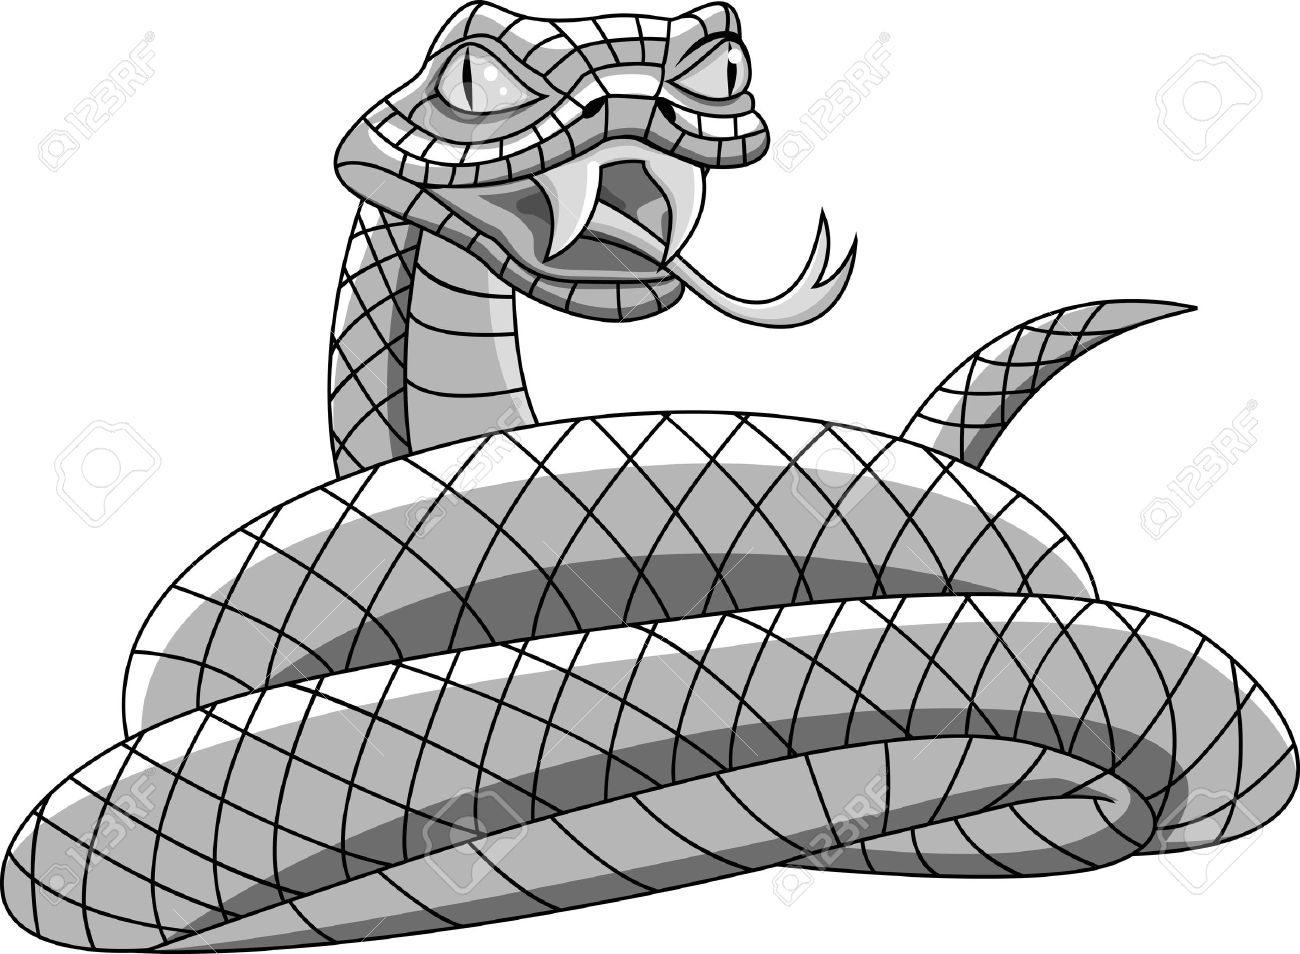 933 Rattlesnake Stock Vector Illustration And Royalty Free ...